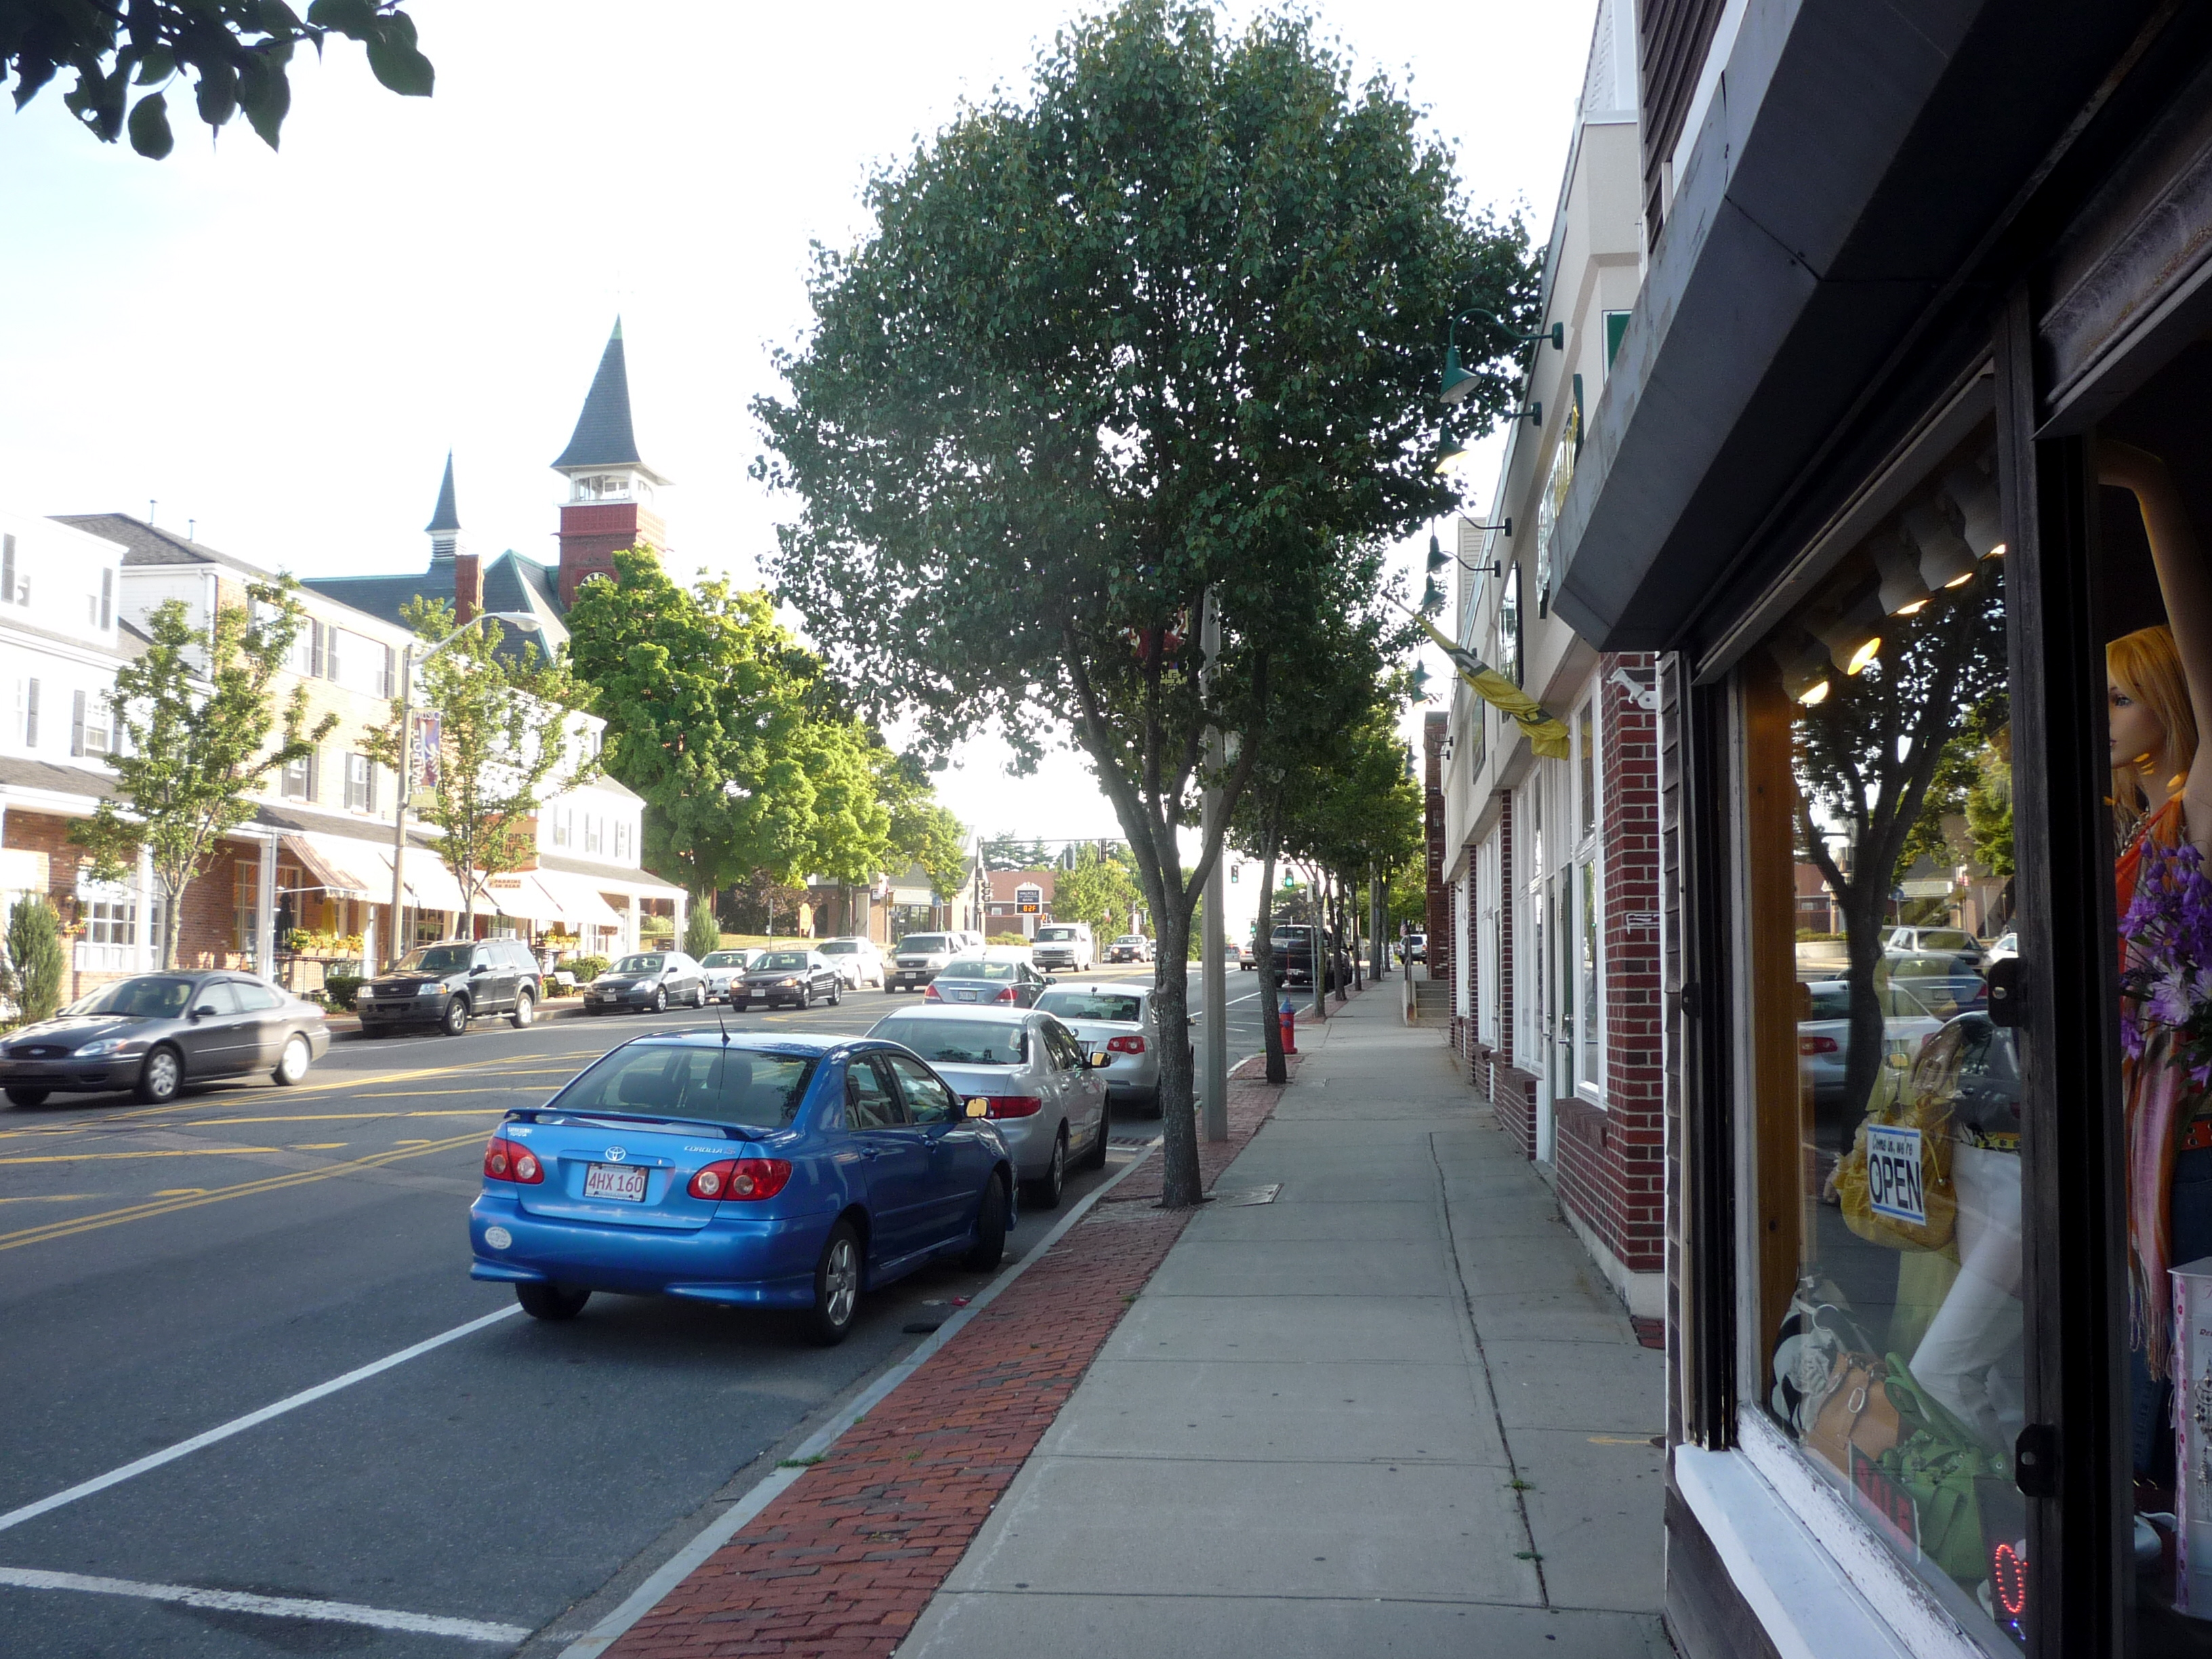 Downtown walpole ma shop local buy local new england downtown walpole mass photo by eric h click to enlarge photo publicscrutiny Image collections